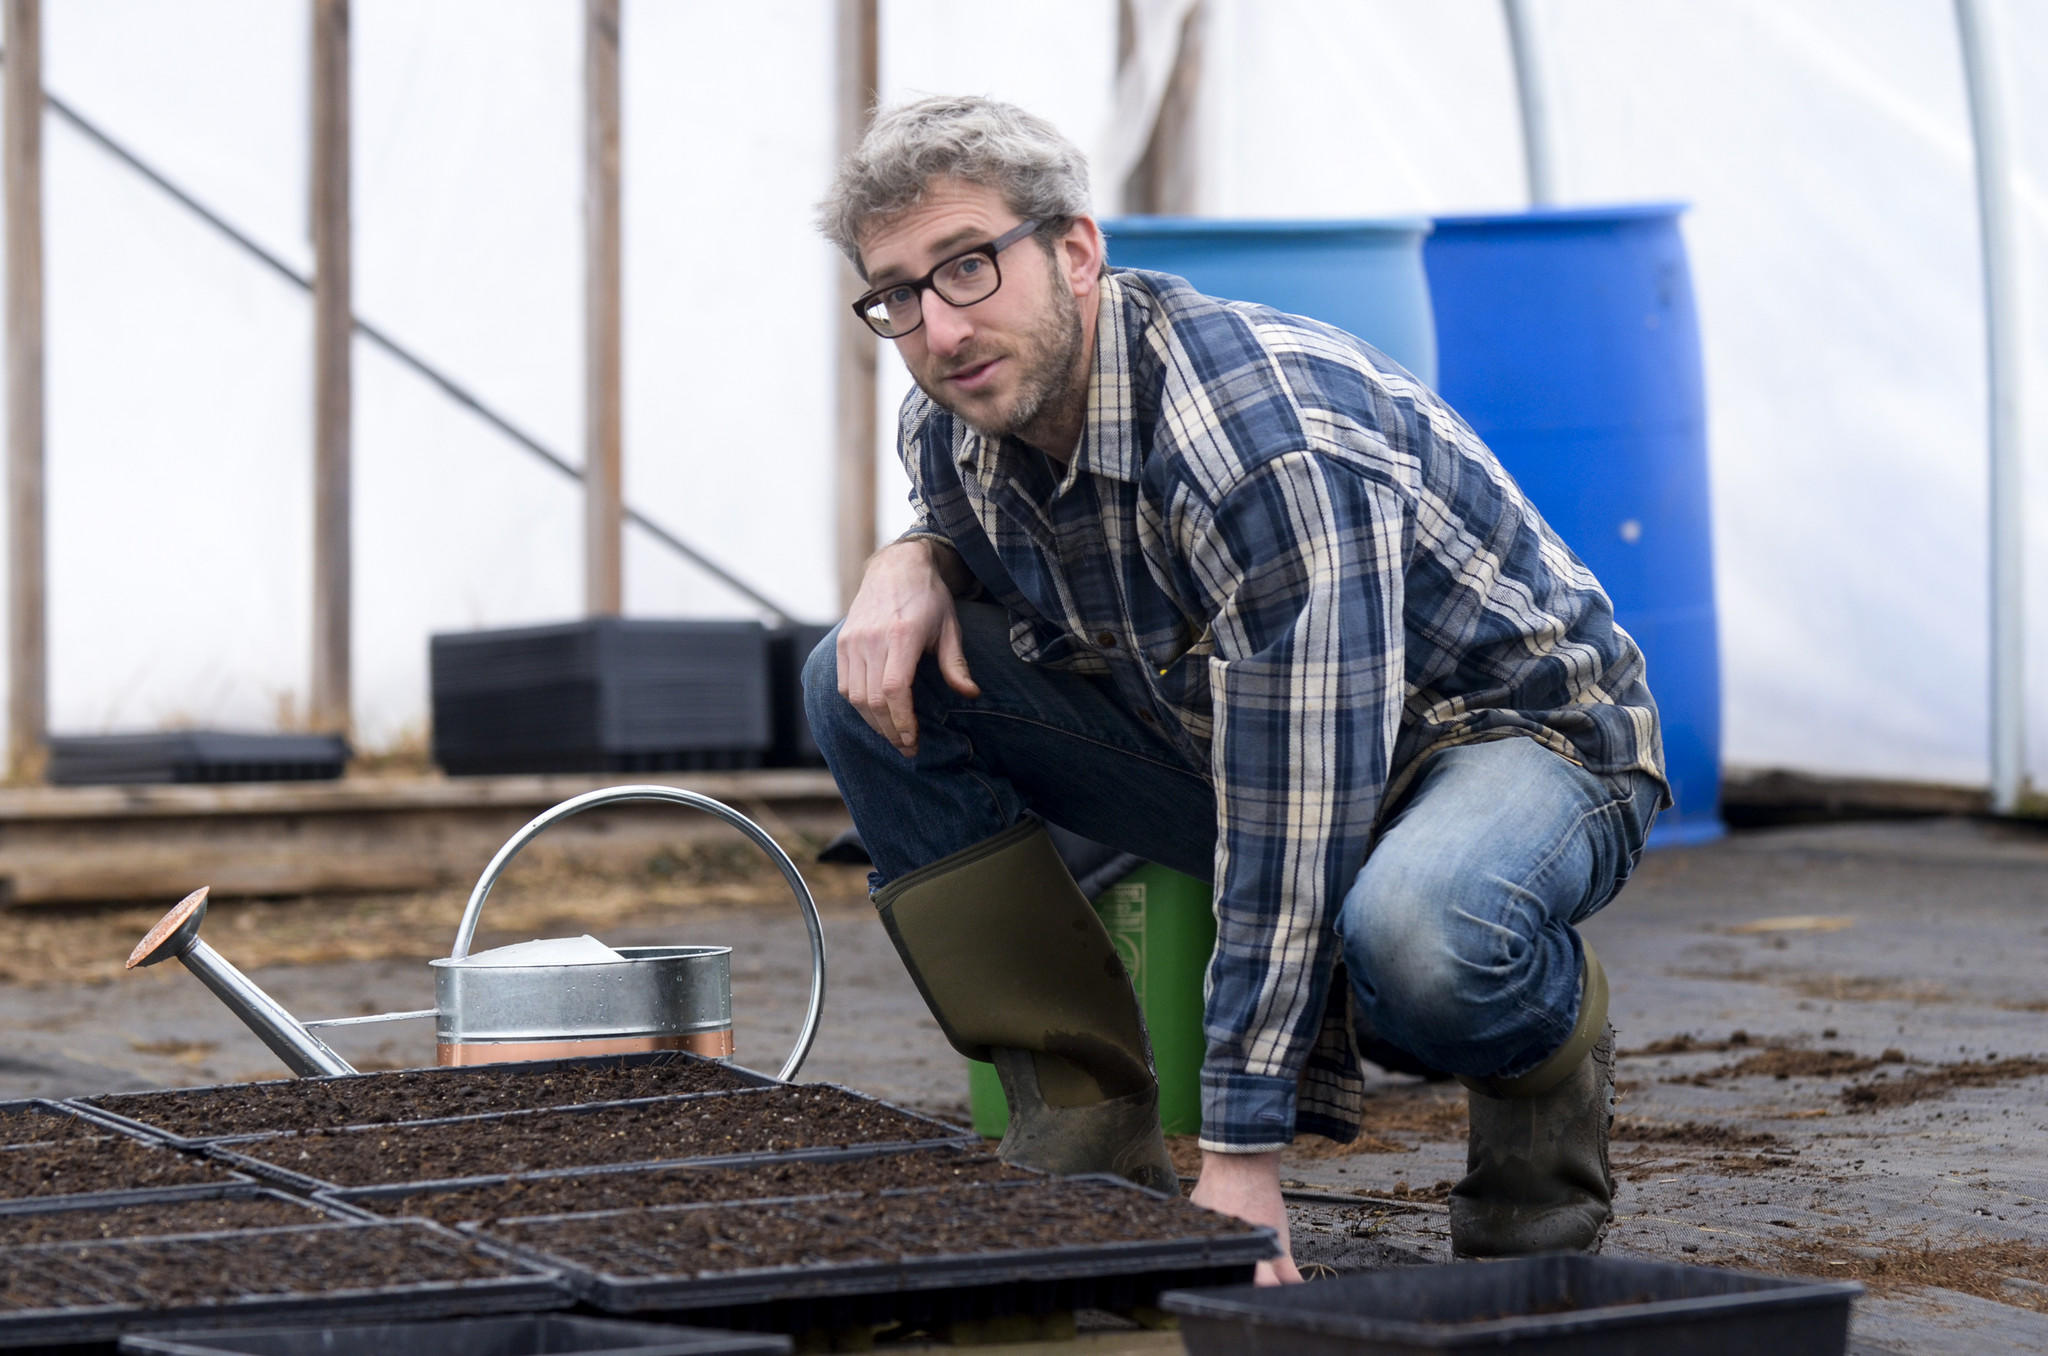 Ben Harris, who started Root Down Farm, will be seeding to prepare for the summer season.